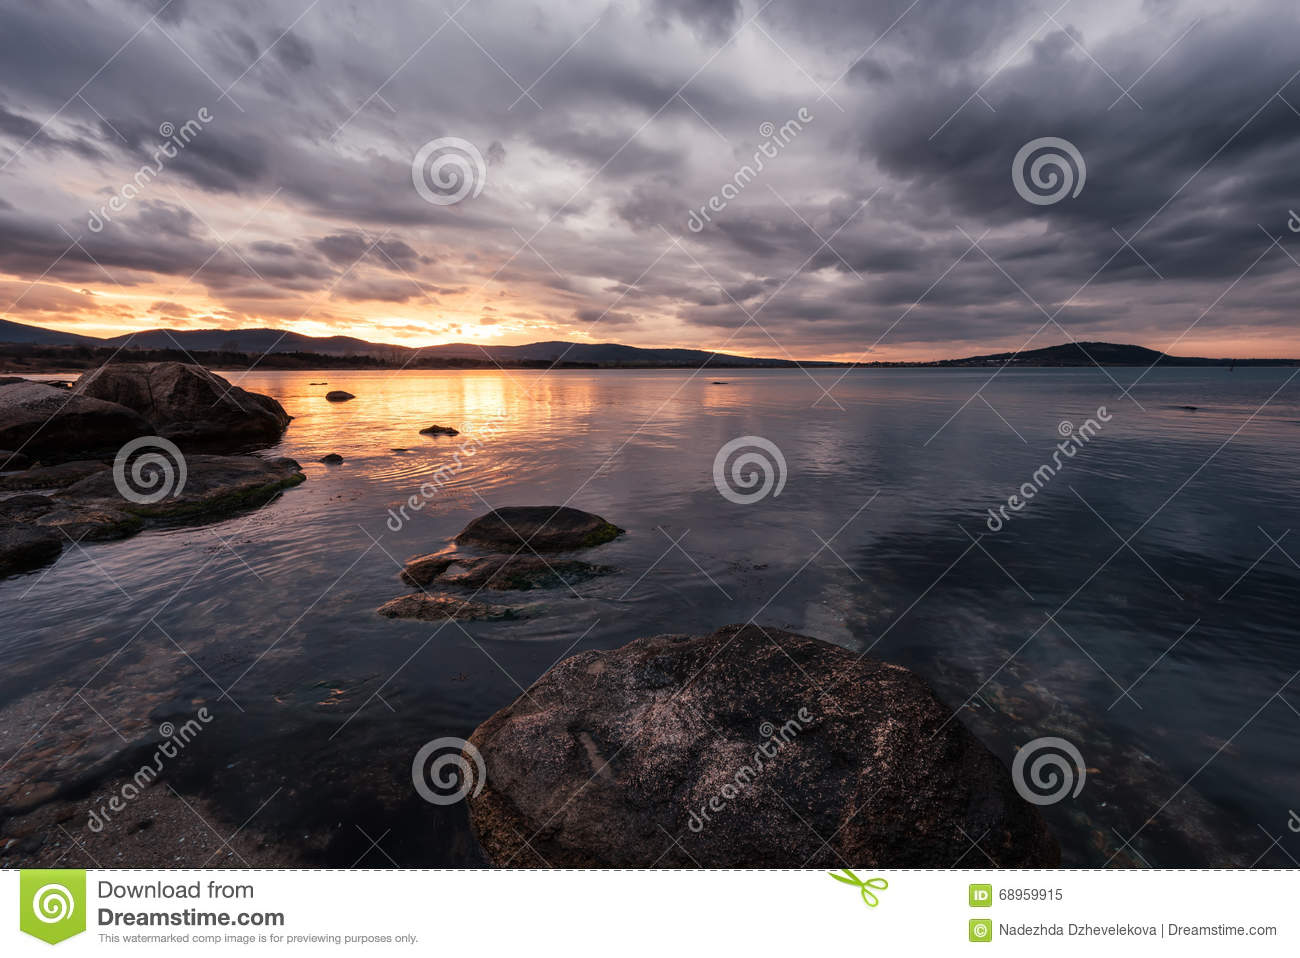 Chernomorets Bulgaria  city pictures gallery : Sunset In Chernomorets, Near Burgas, Bulgaria. Stock Photo Image ...